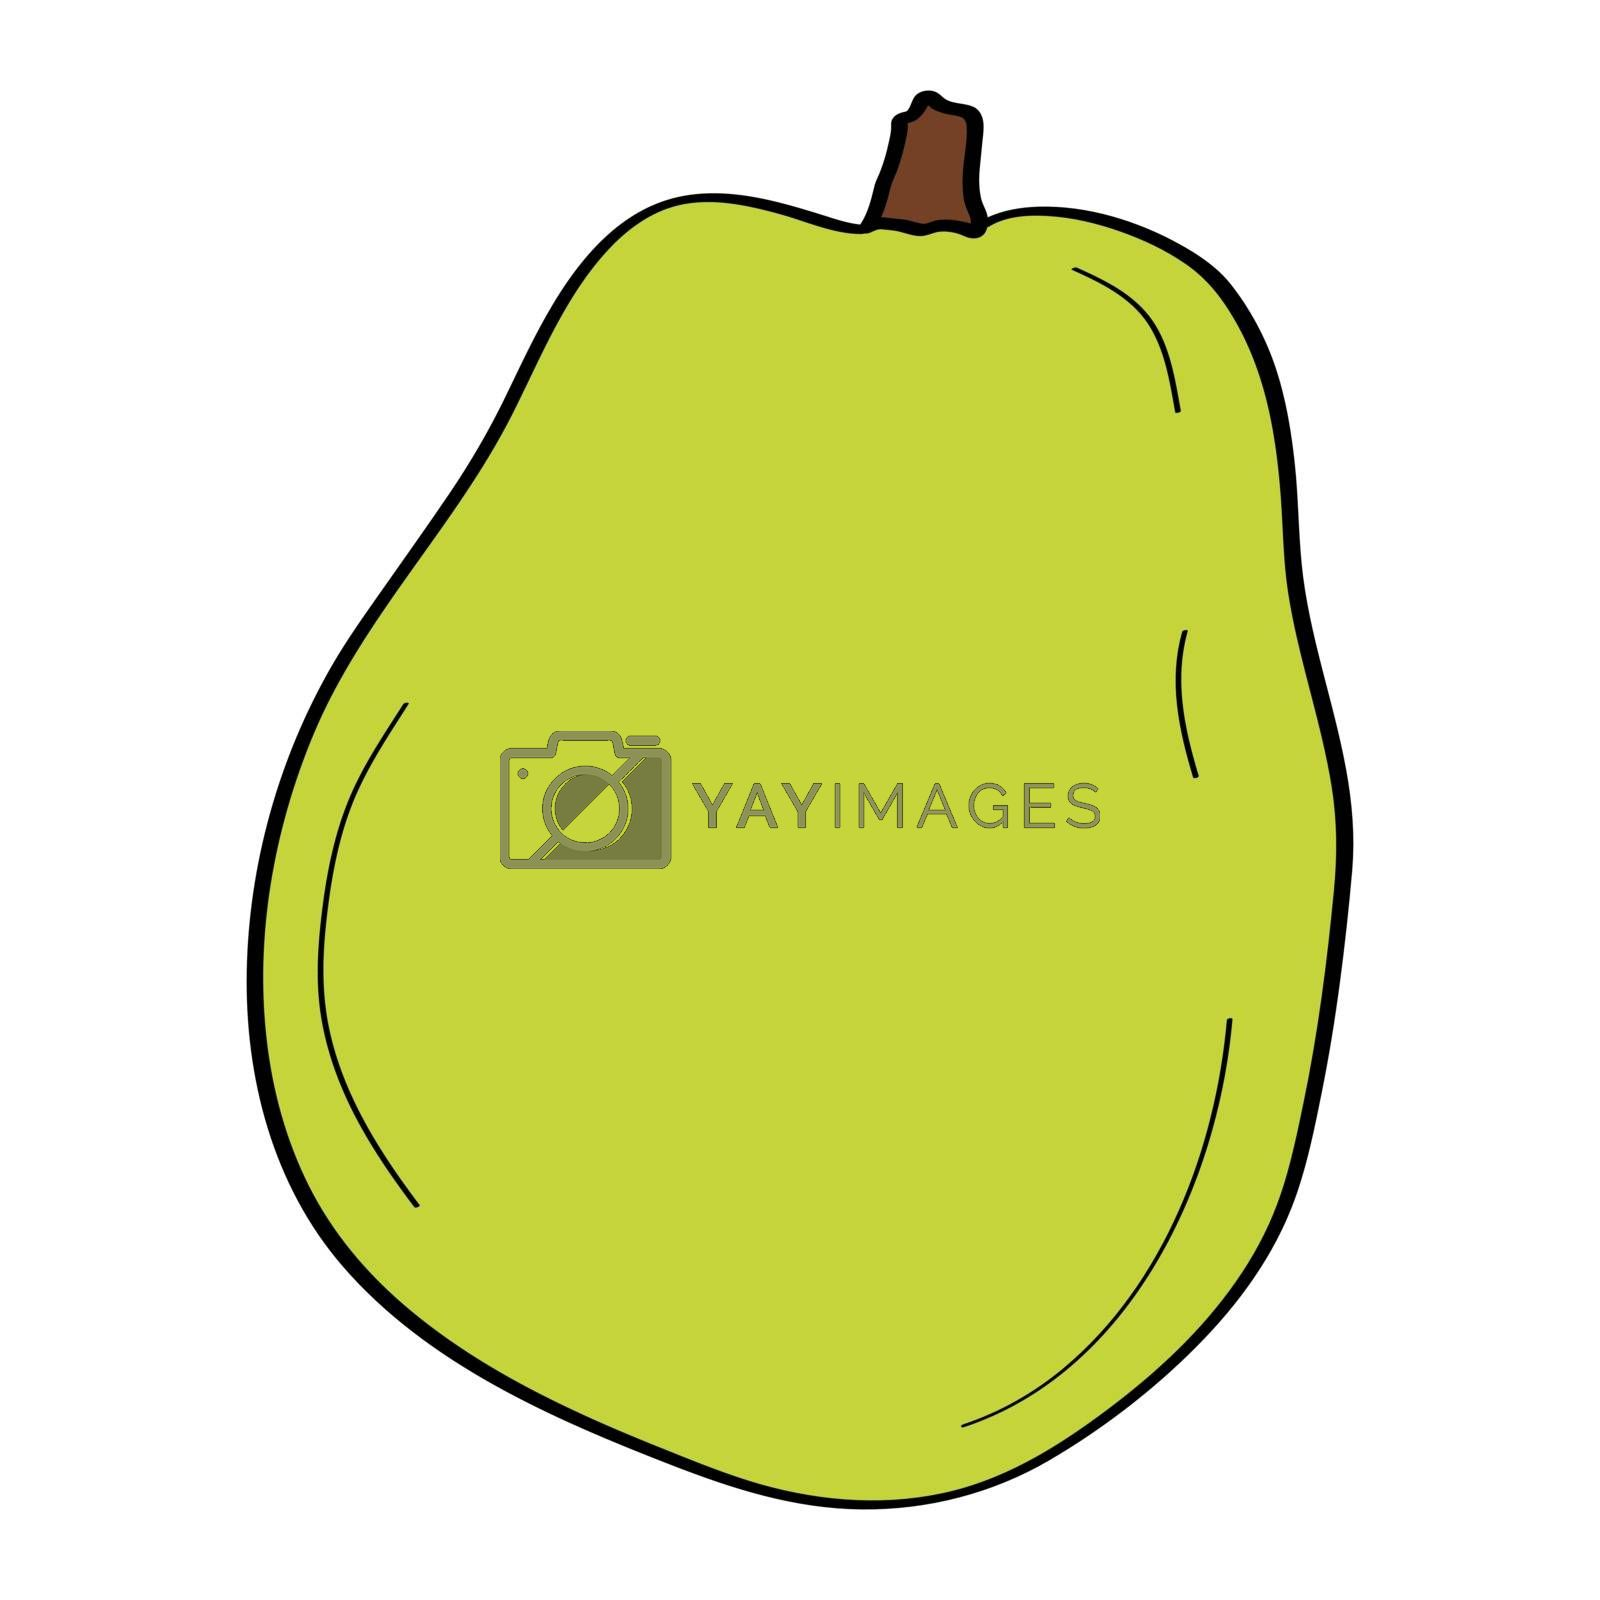 Pear. Hand drawn doodle icon. Colorful vector illustration isolated on white background. Decoration for greeting cards, posters, patches, prints for clothes, emblems.